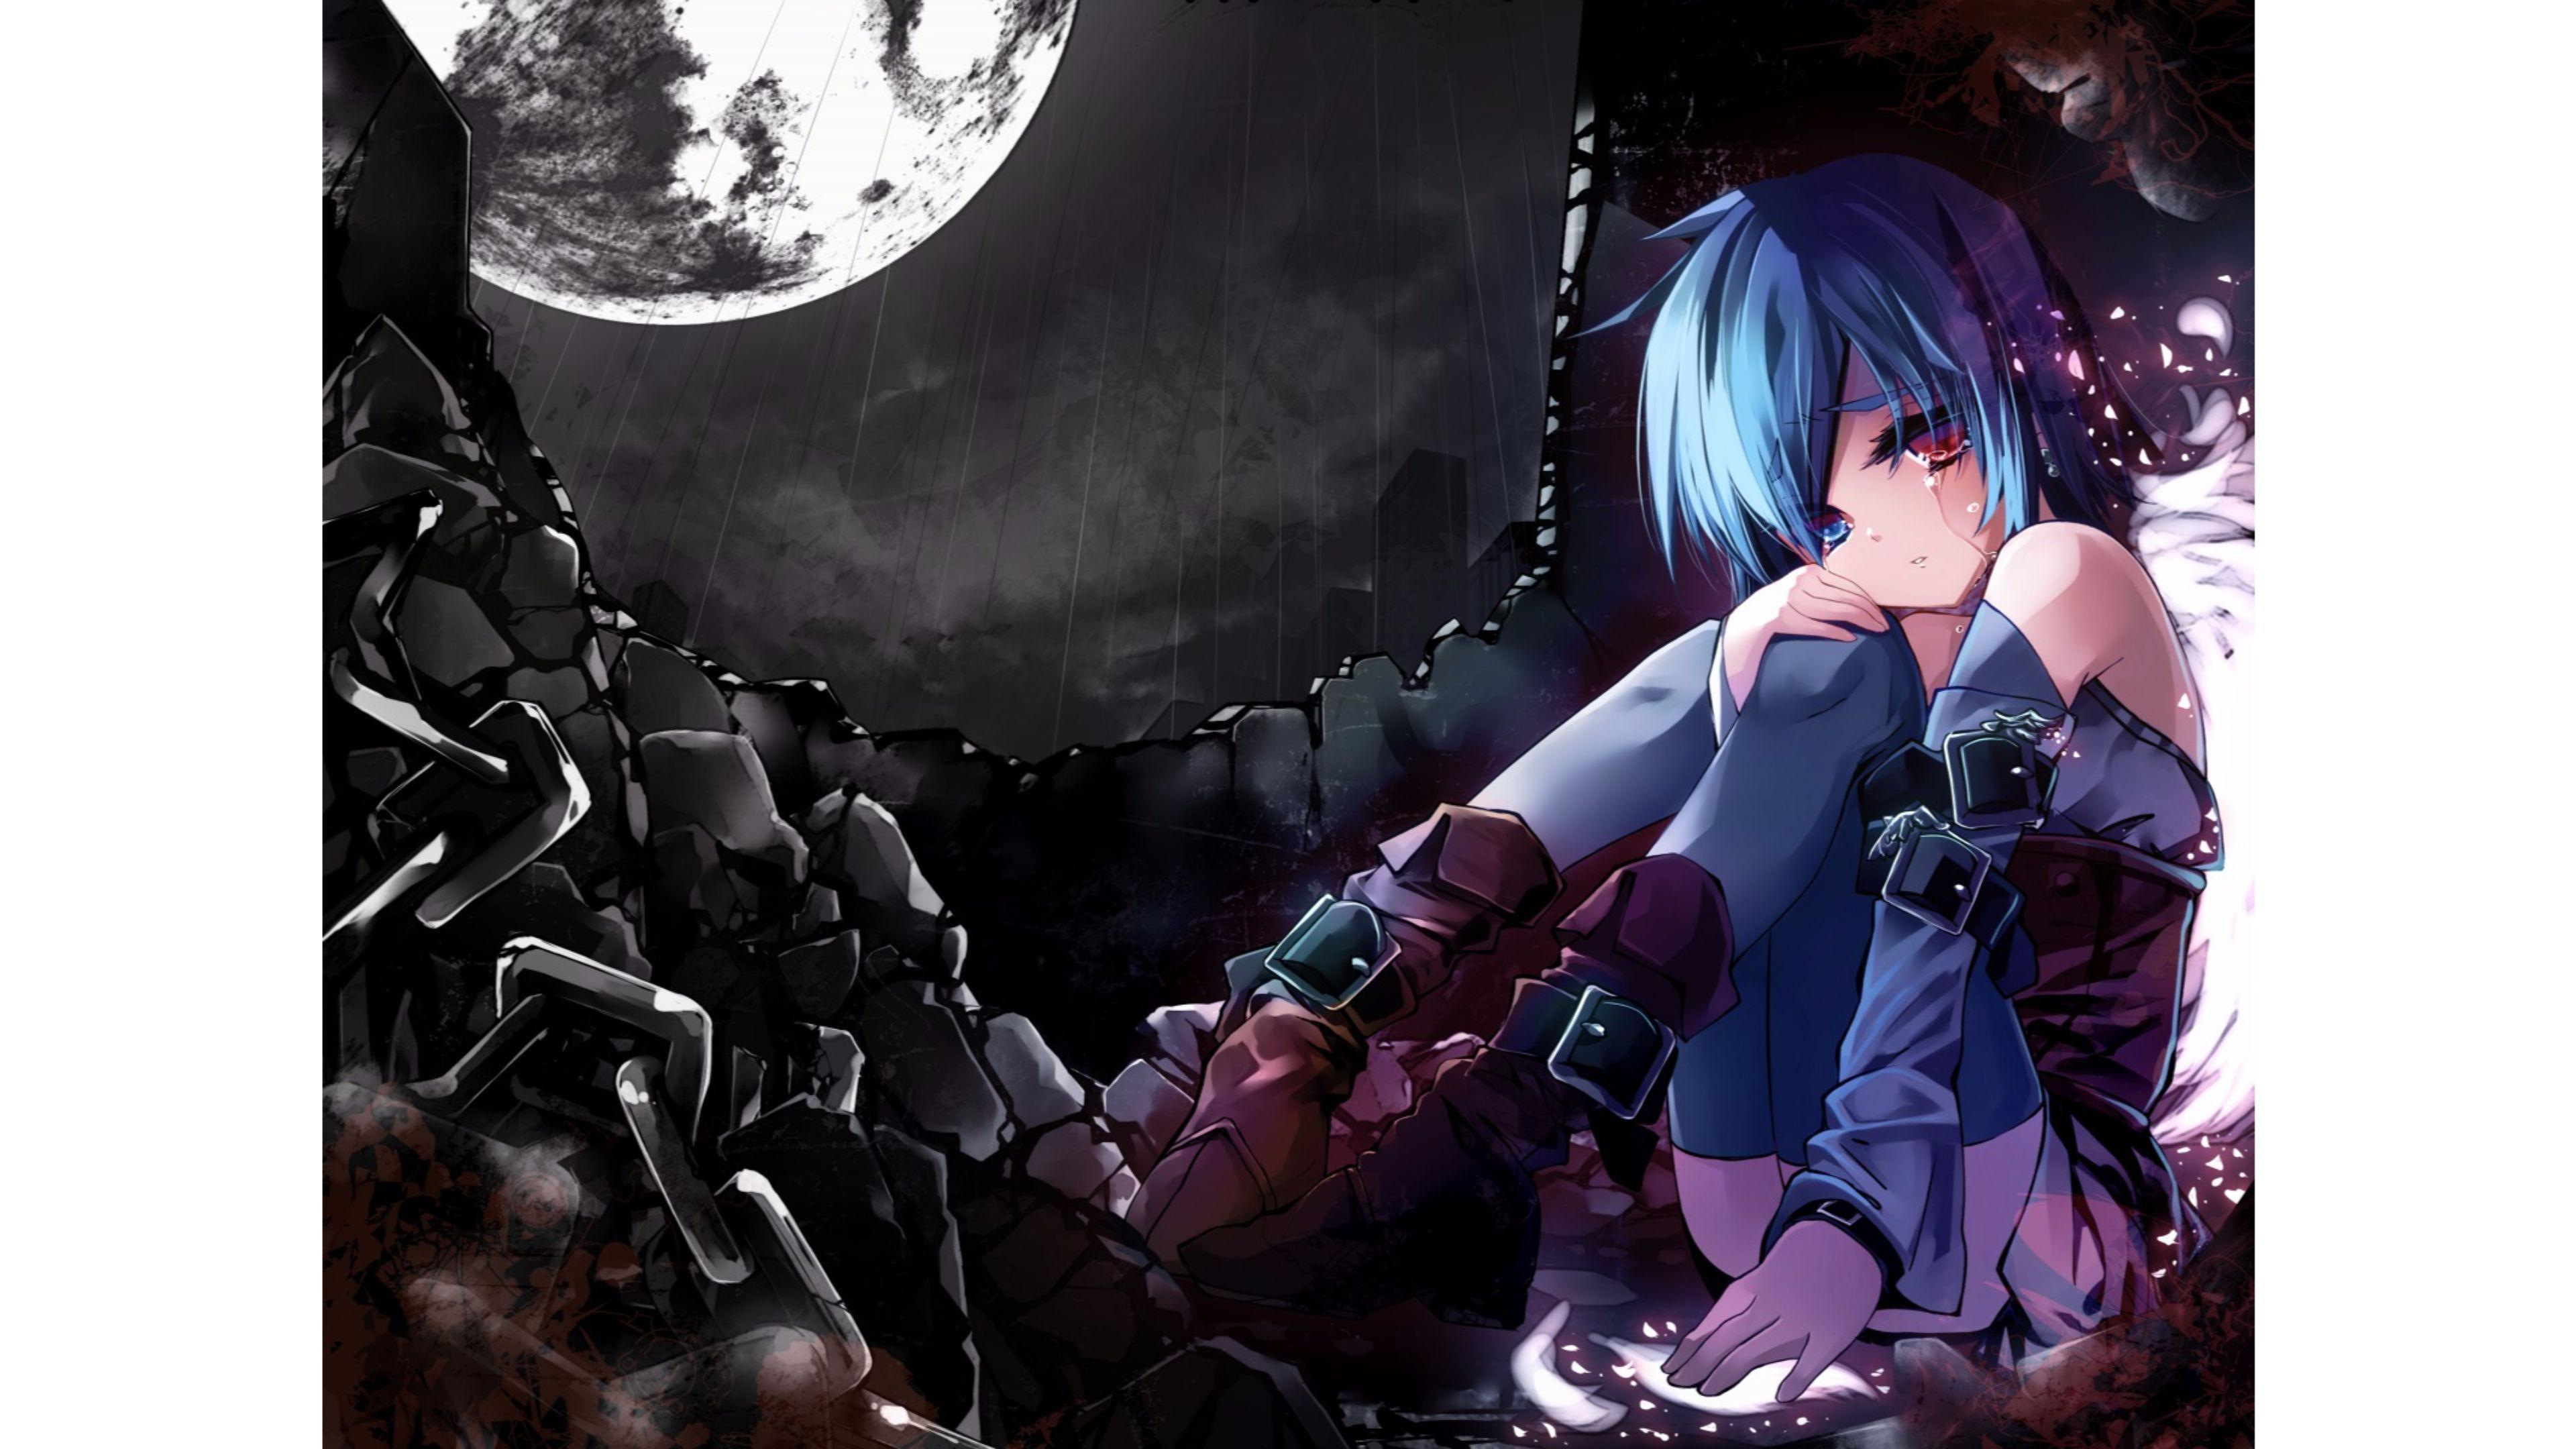 Sad Love Animation Wallpaper : Sad Anime Wallpapers - Wallpaper cave